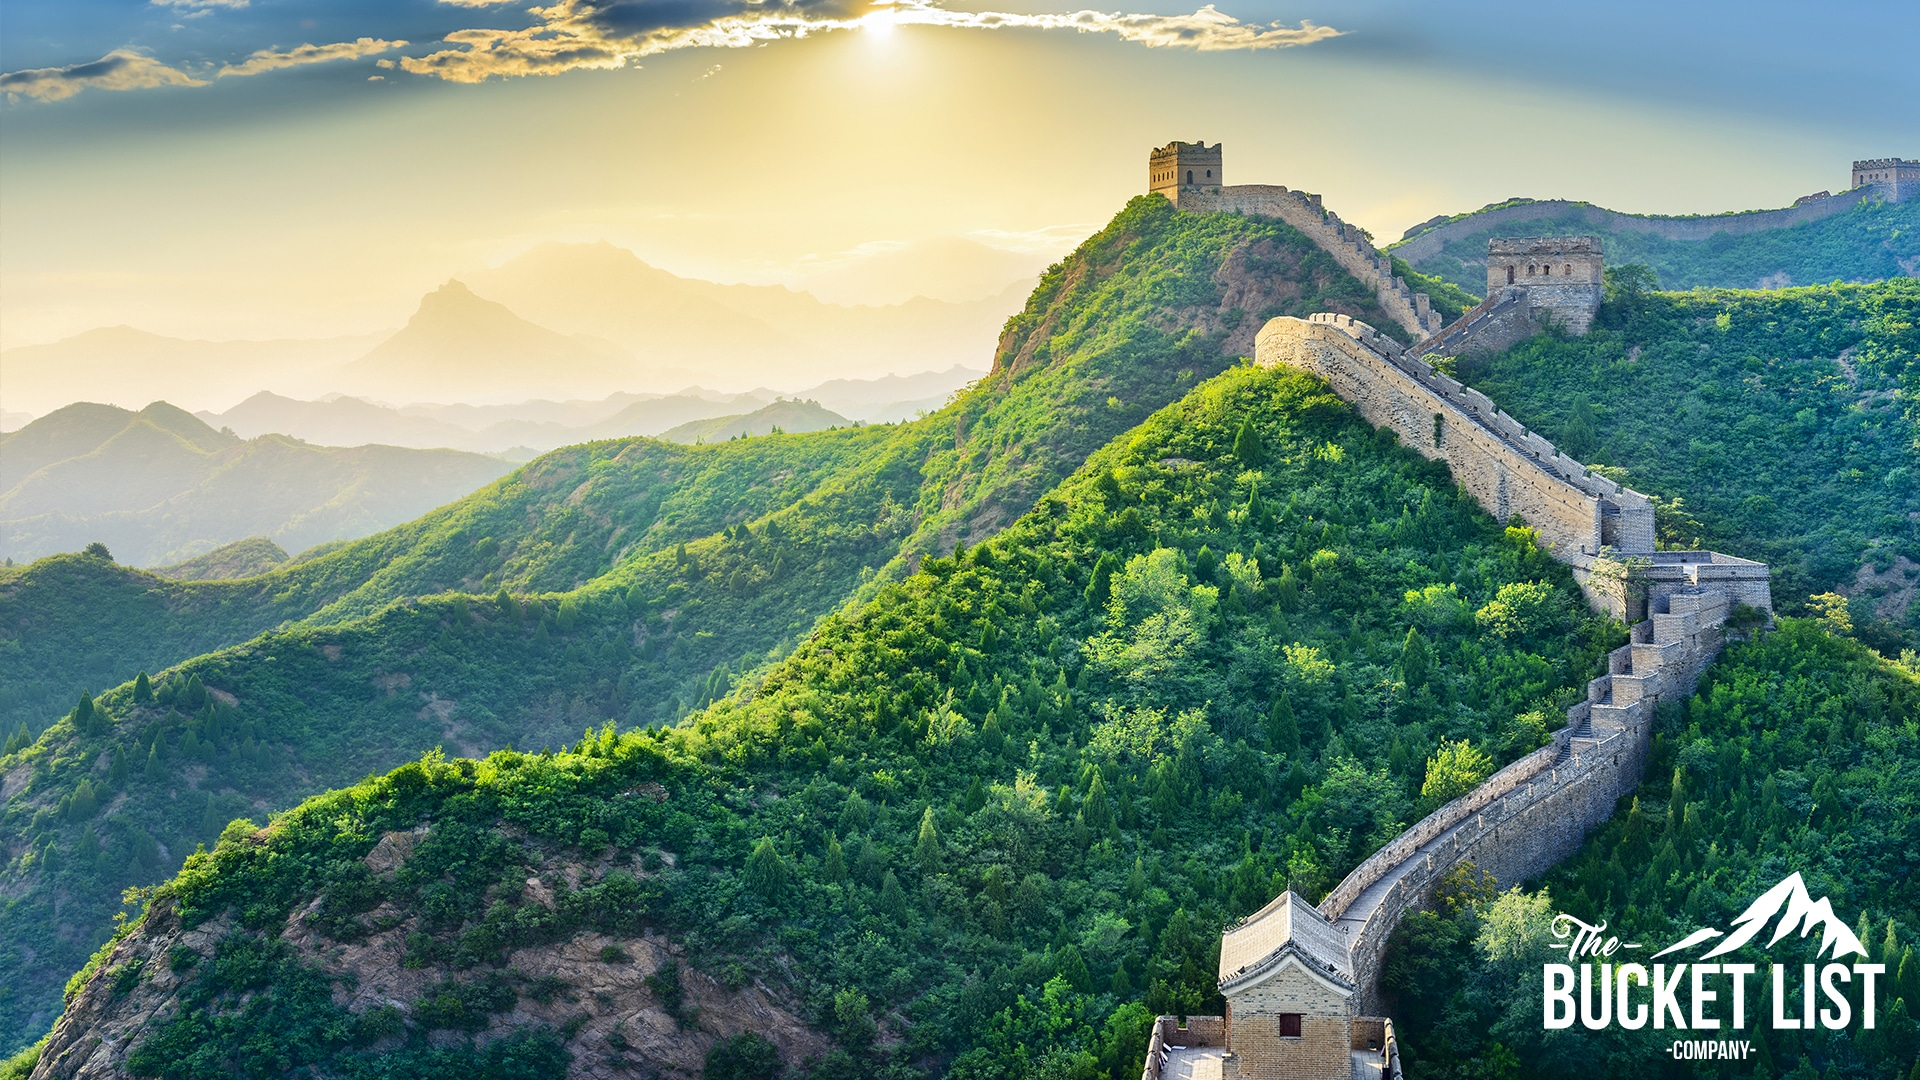 A stunning photo of the Great wall of china running through Chinese Mountains